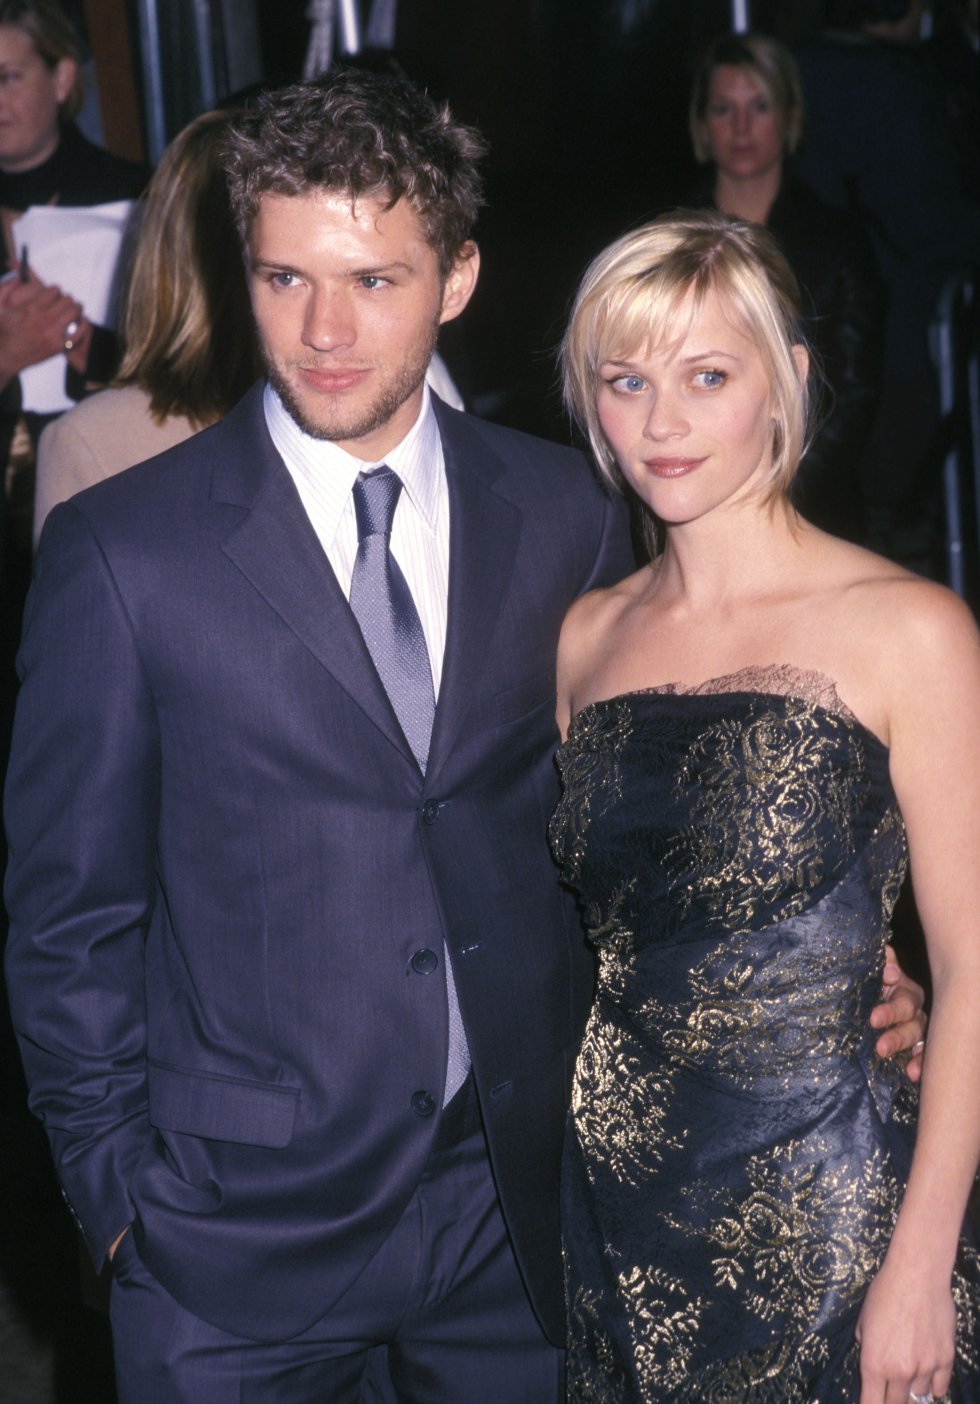 Ryan Phillippe engañó a la célebre Resse Witherspoon.